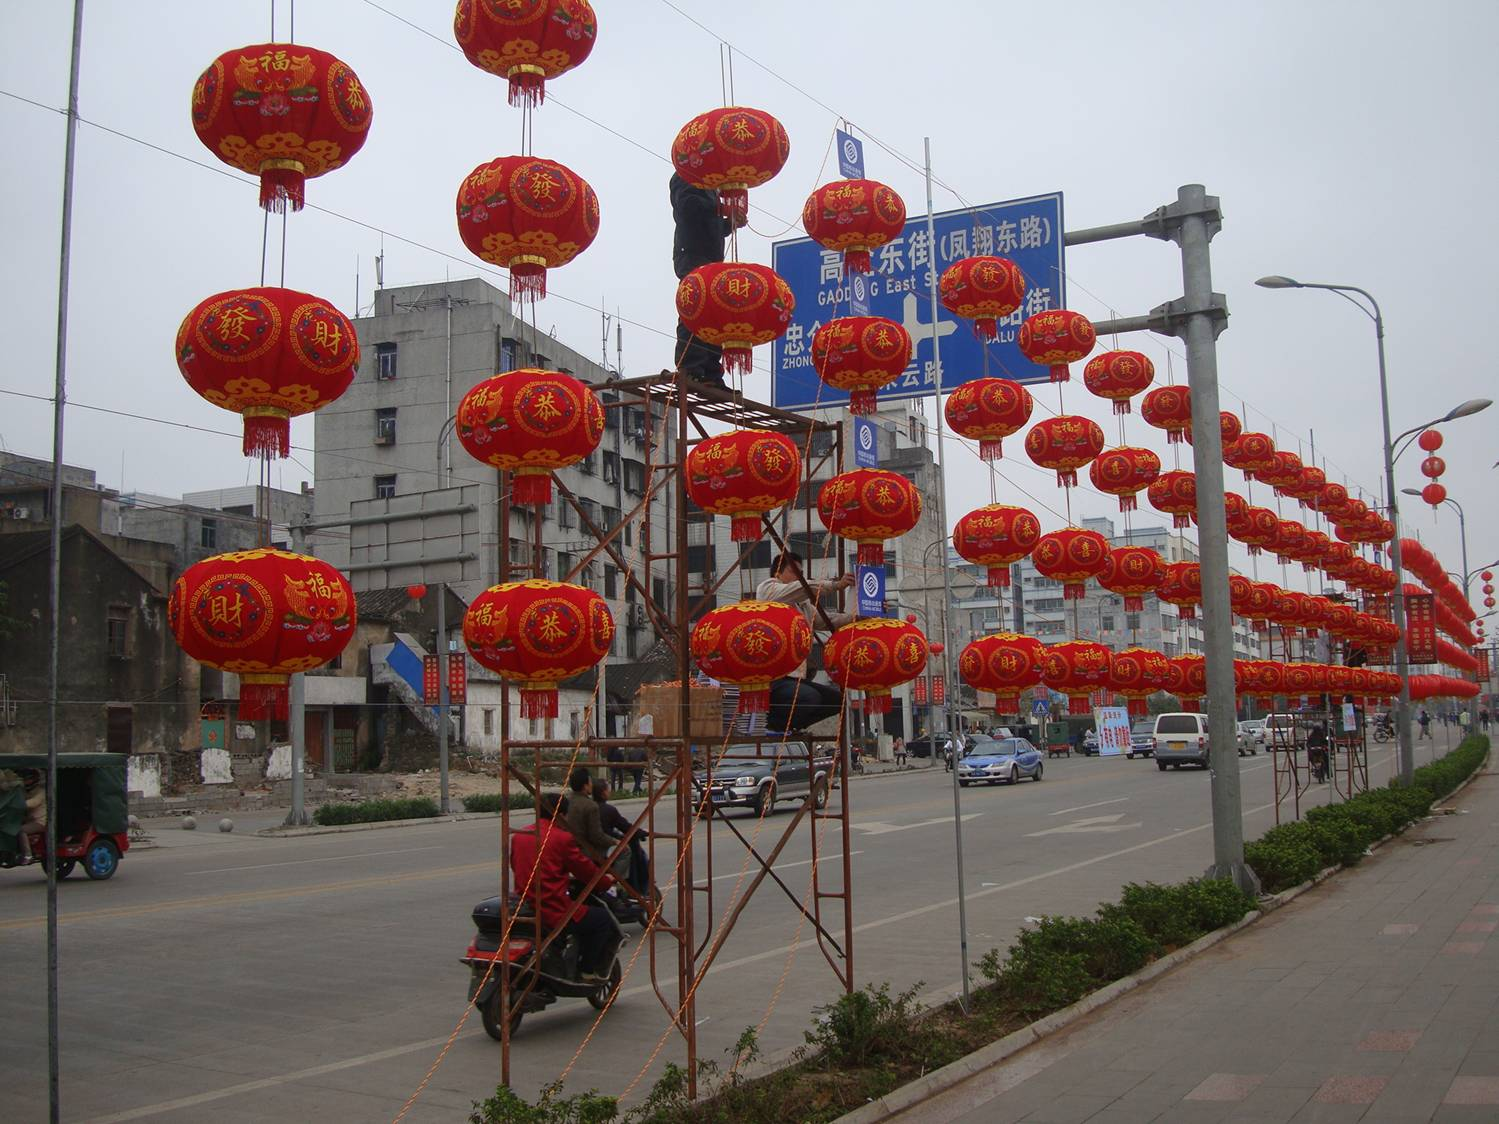 Picture:  Four rows of closely spaced red lanterns for the Lantern Festival stretch into the distance along a street in Haikou, Hainan Island, China